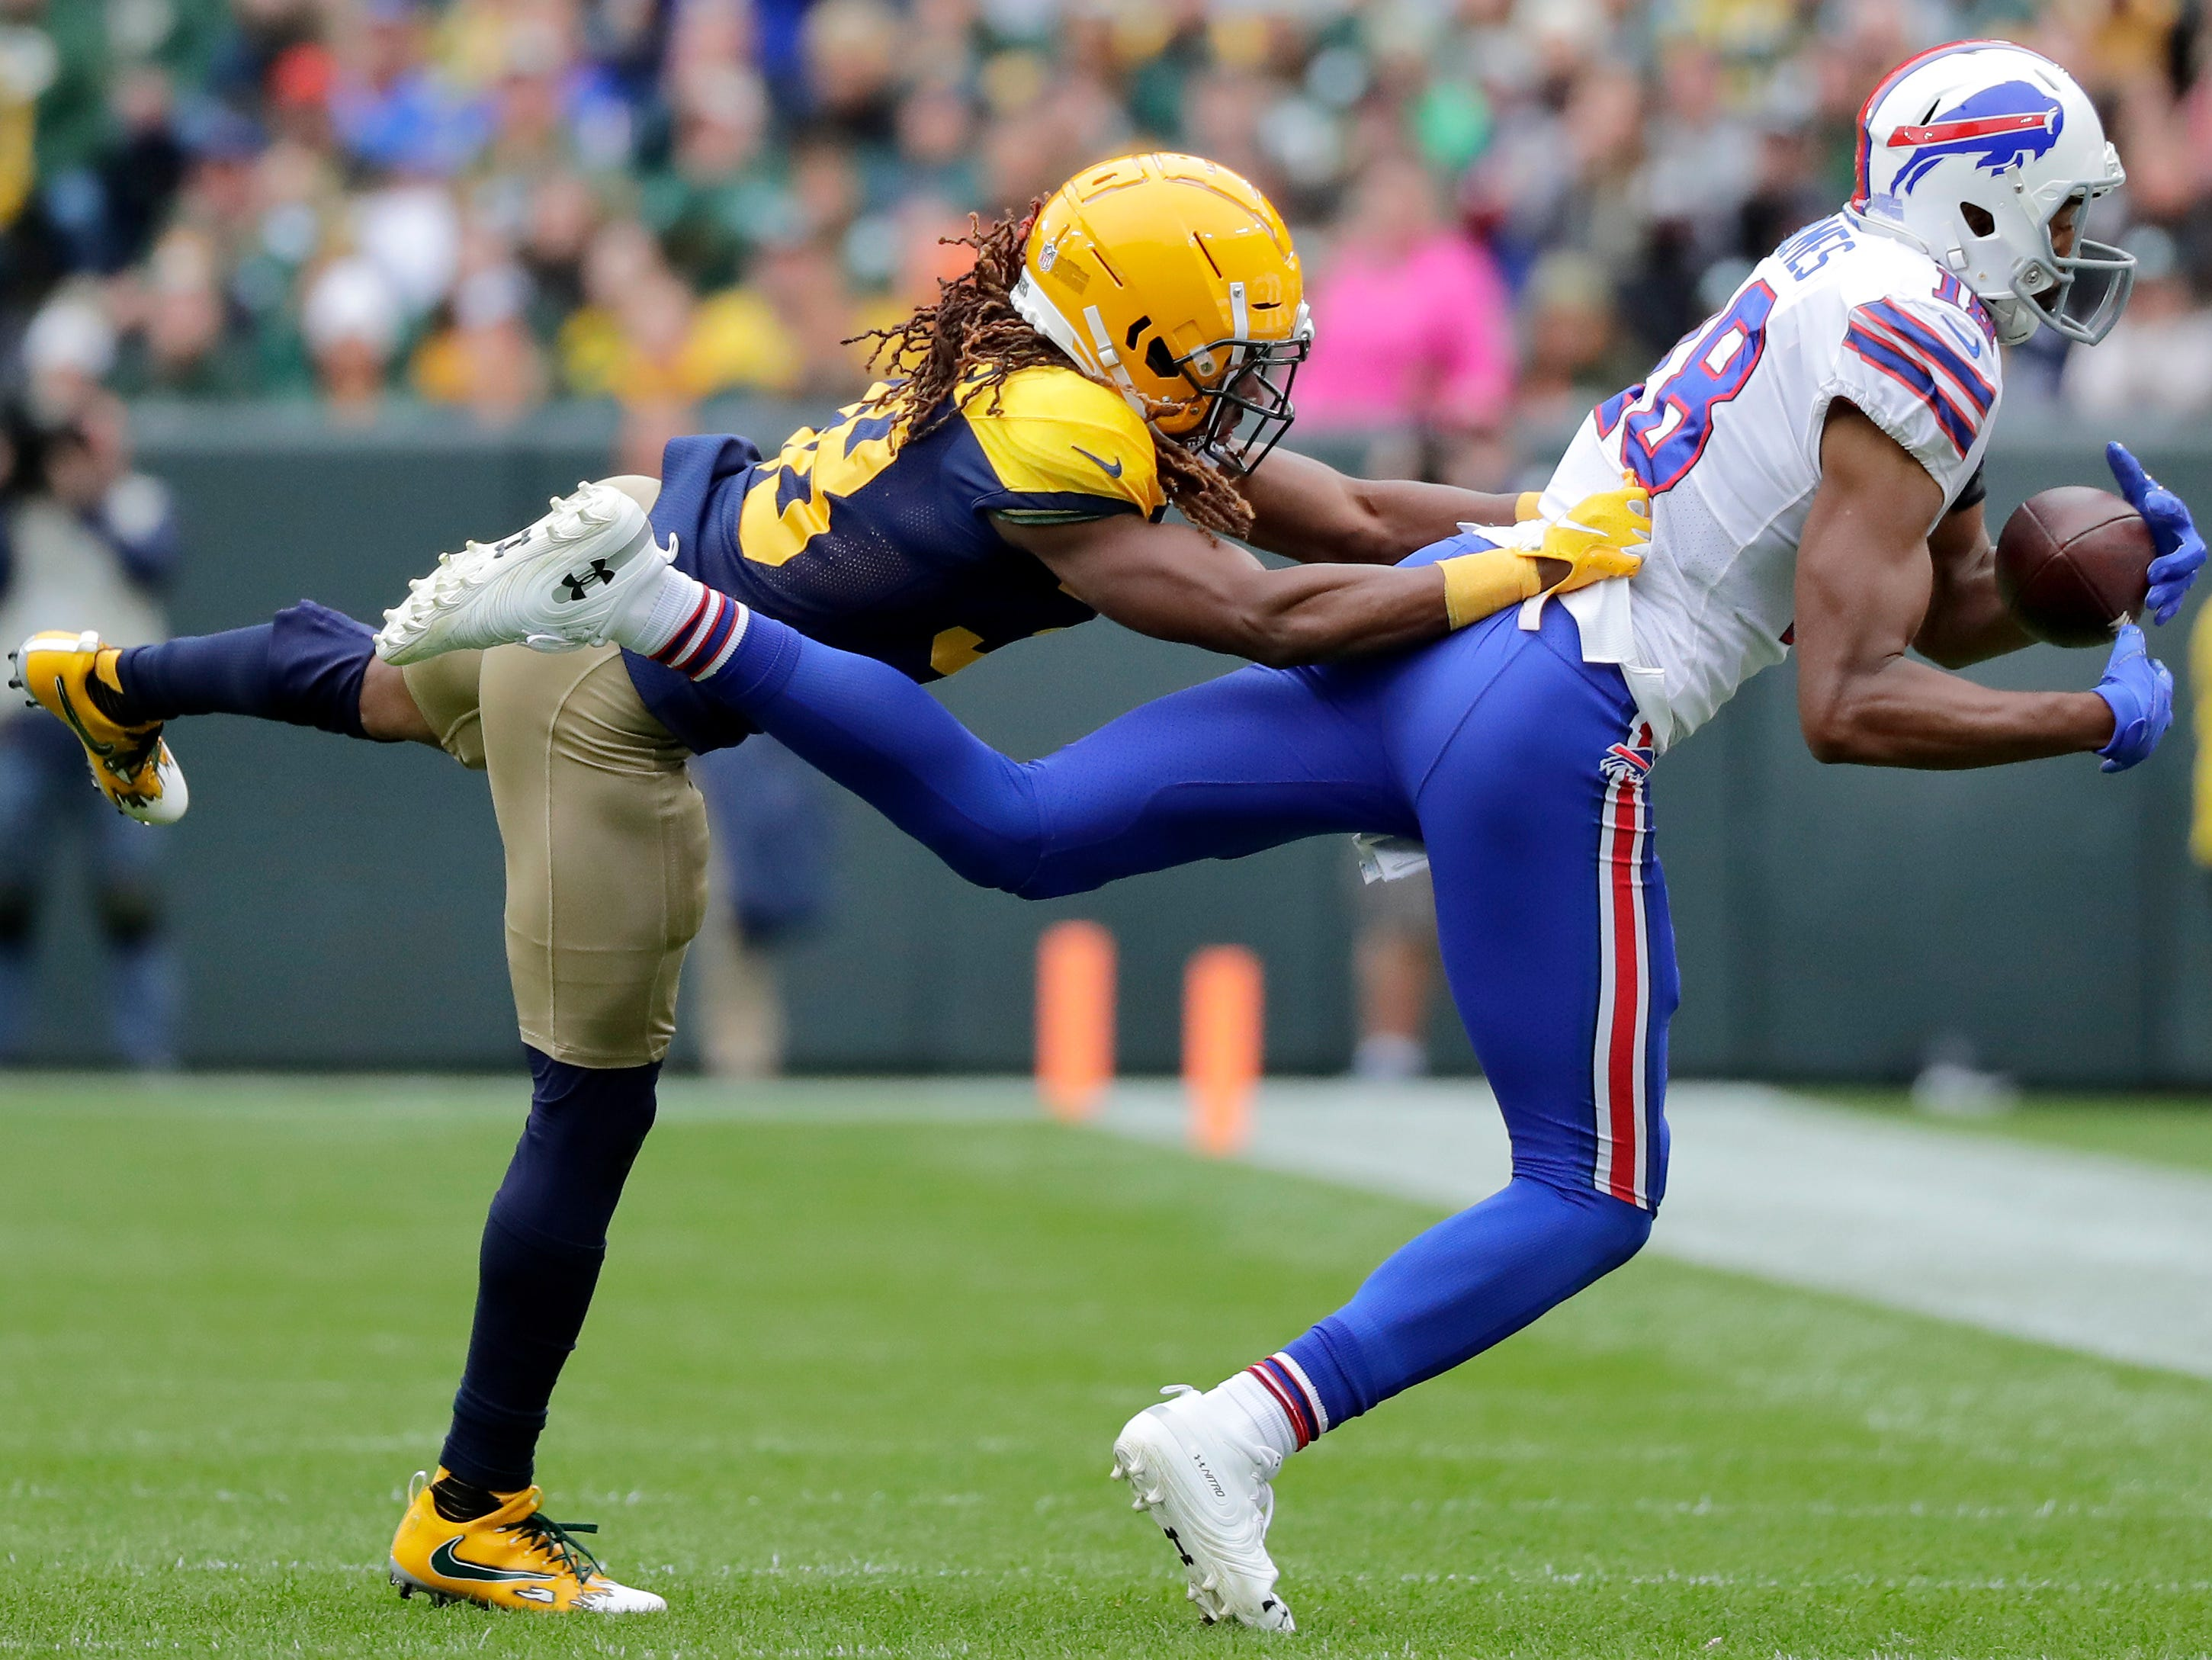 Green Bay Packers defensive back Tramon Williams defends Buffalo Bills wide receiver Andre Holmes on Sunday, September 30, 2018, at Lambeau Field in Green Bay, Wis. 